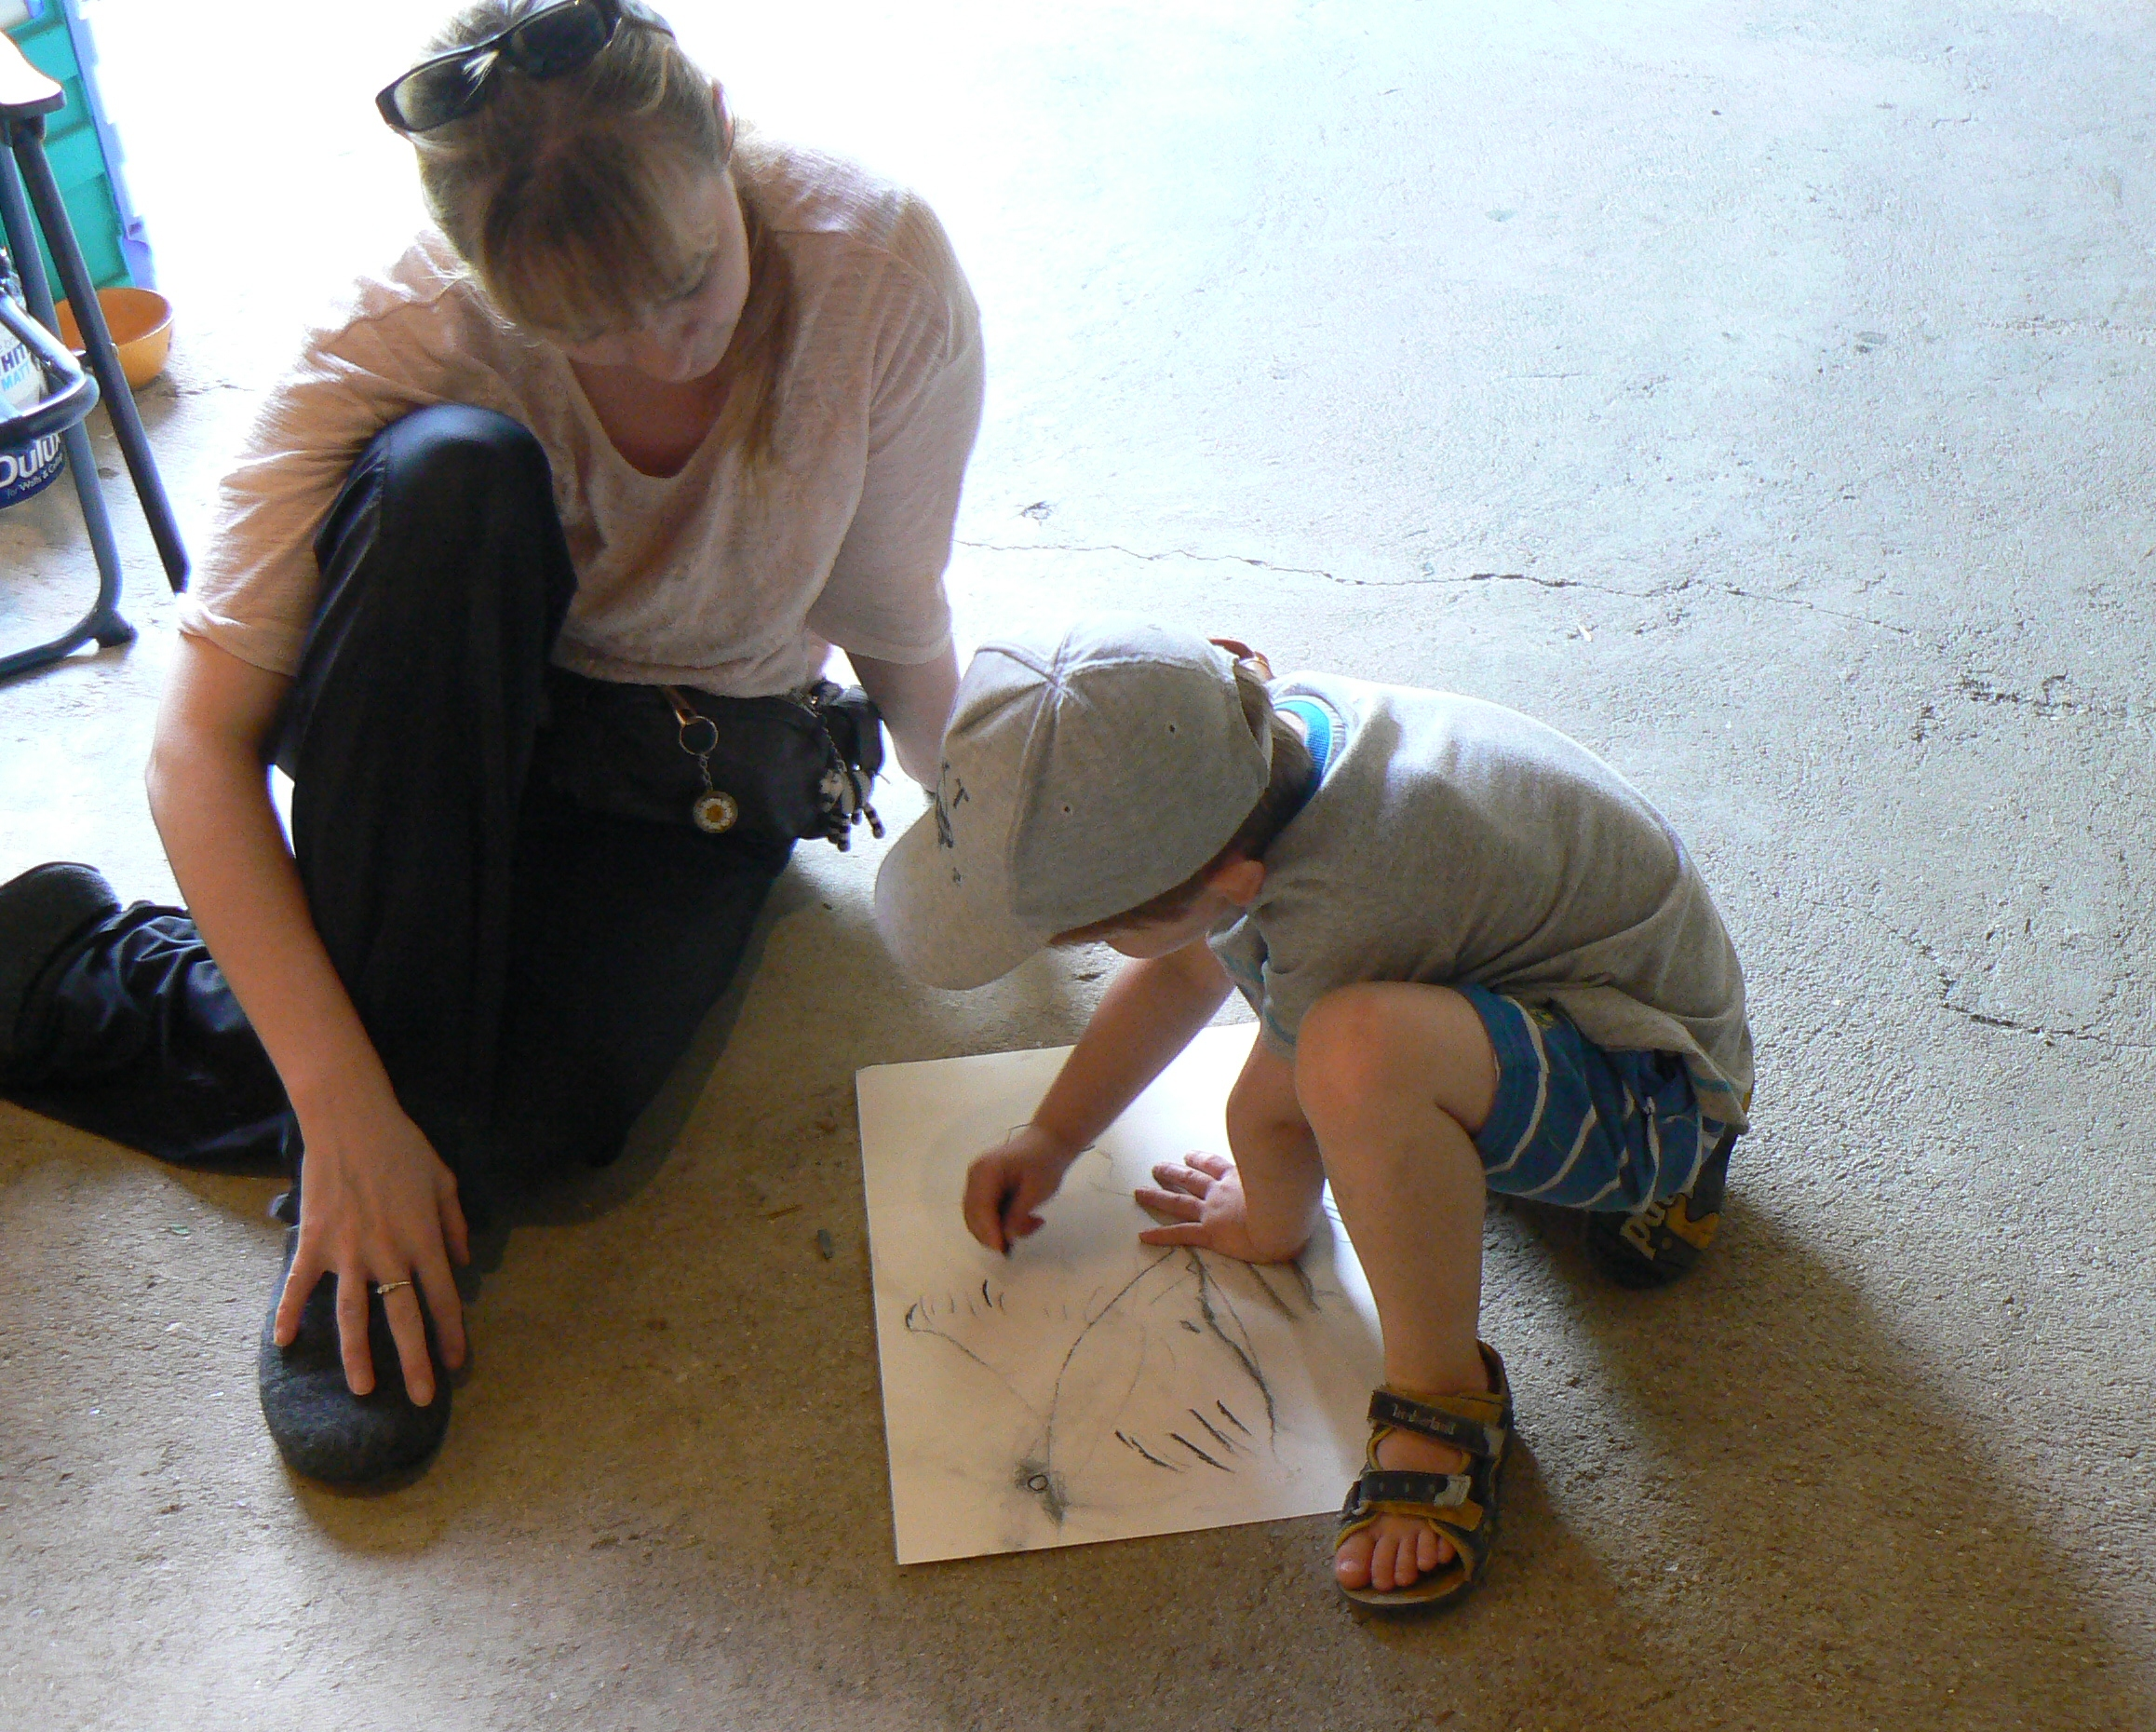 One of our younger visitors having a go with charcoal for the first time.